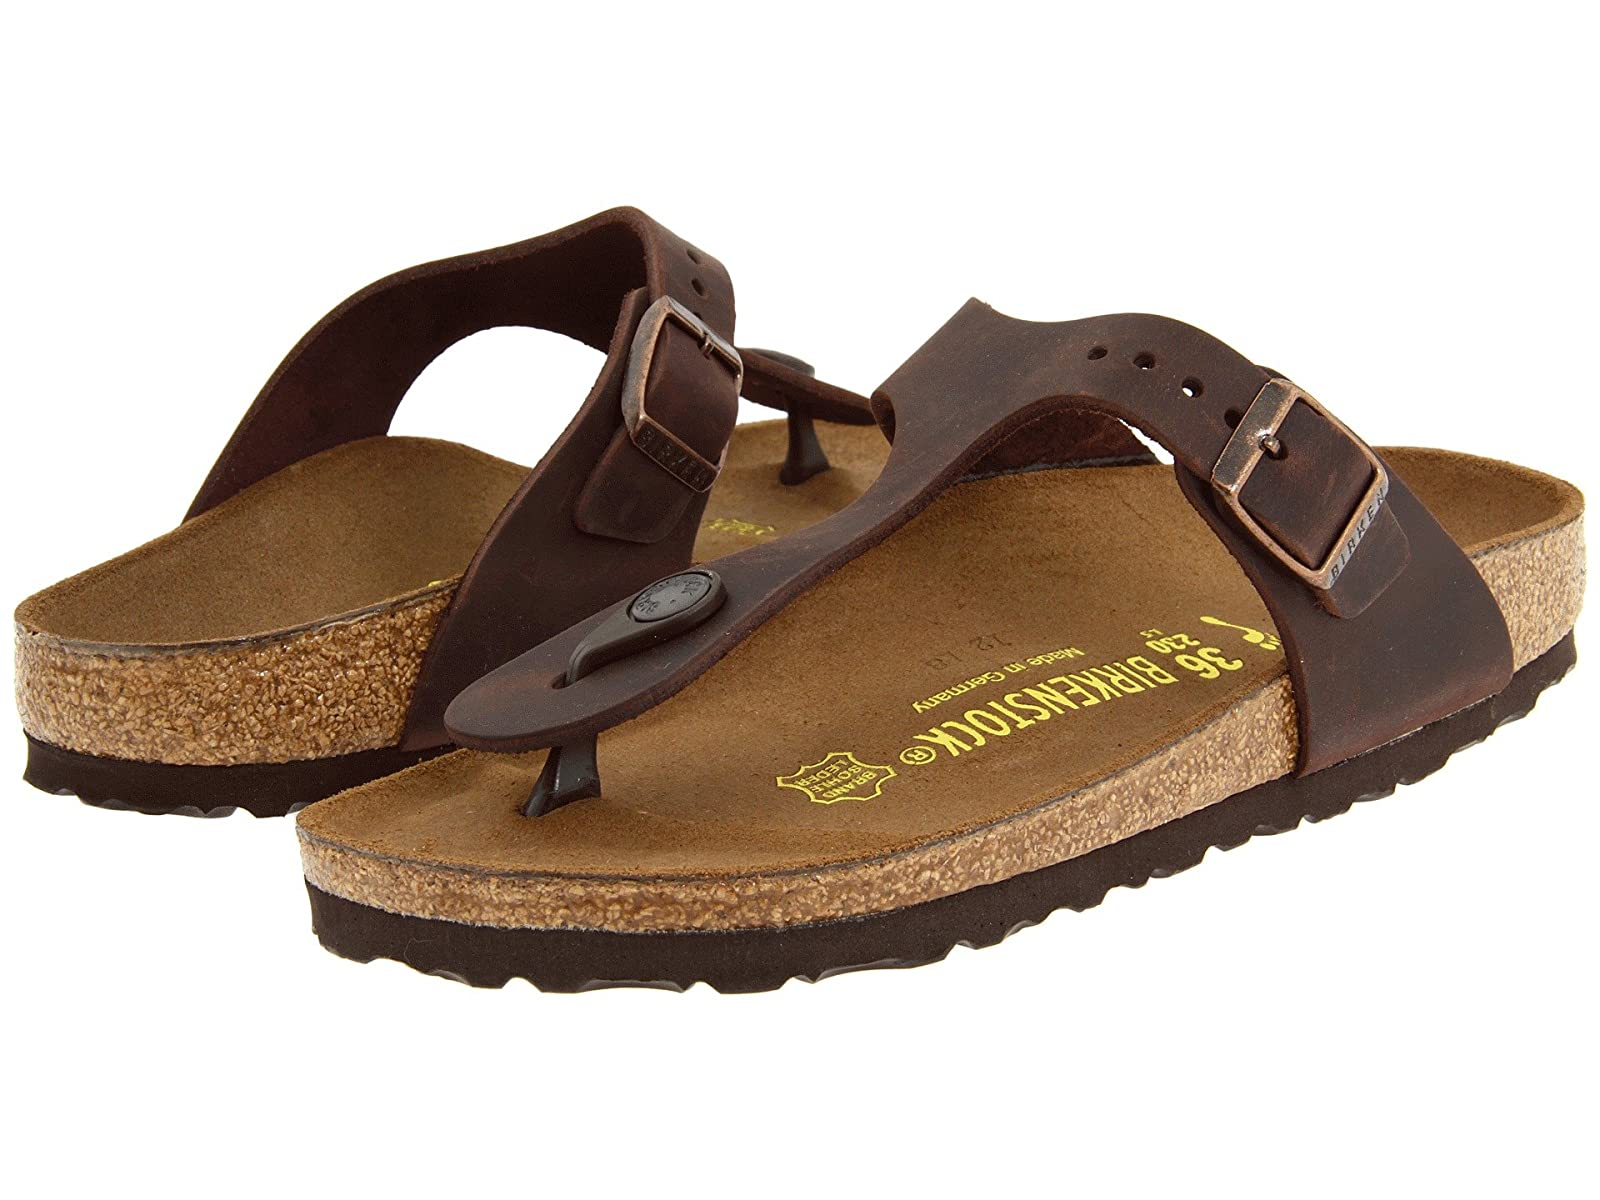 Birkenstock Gizeh Oiled LeatherComfortable and distinctive shoes